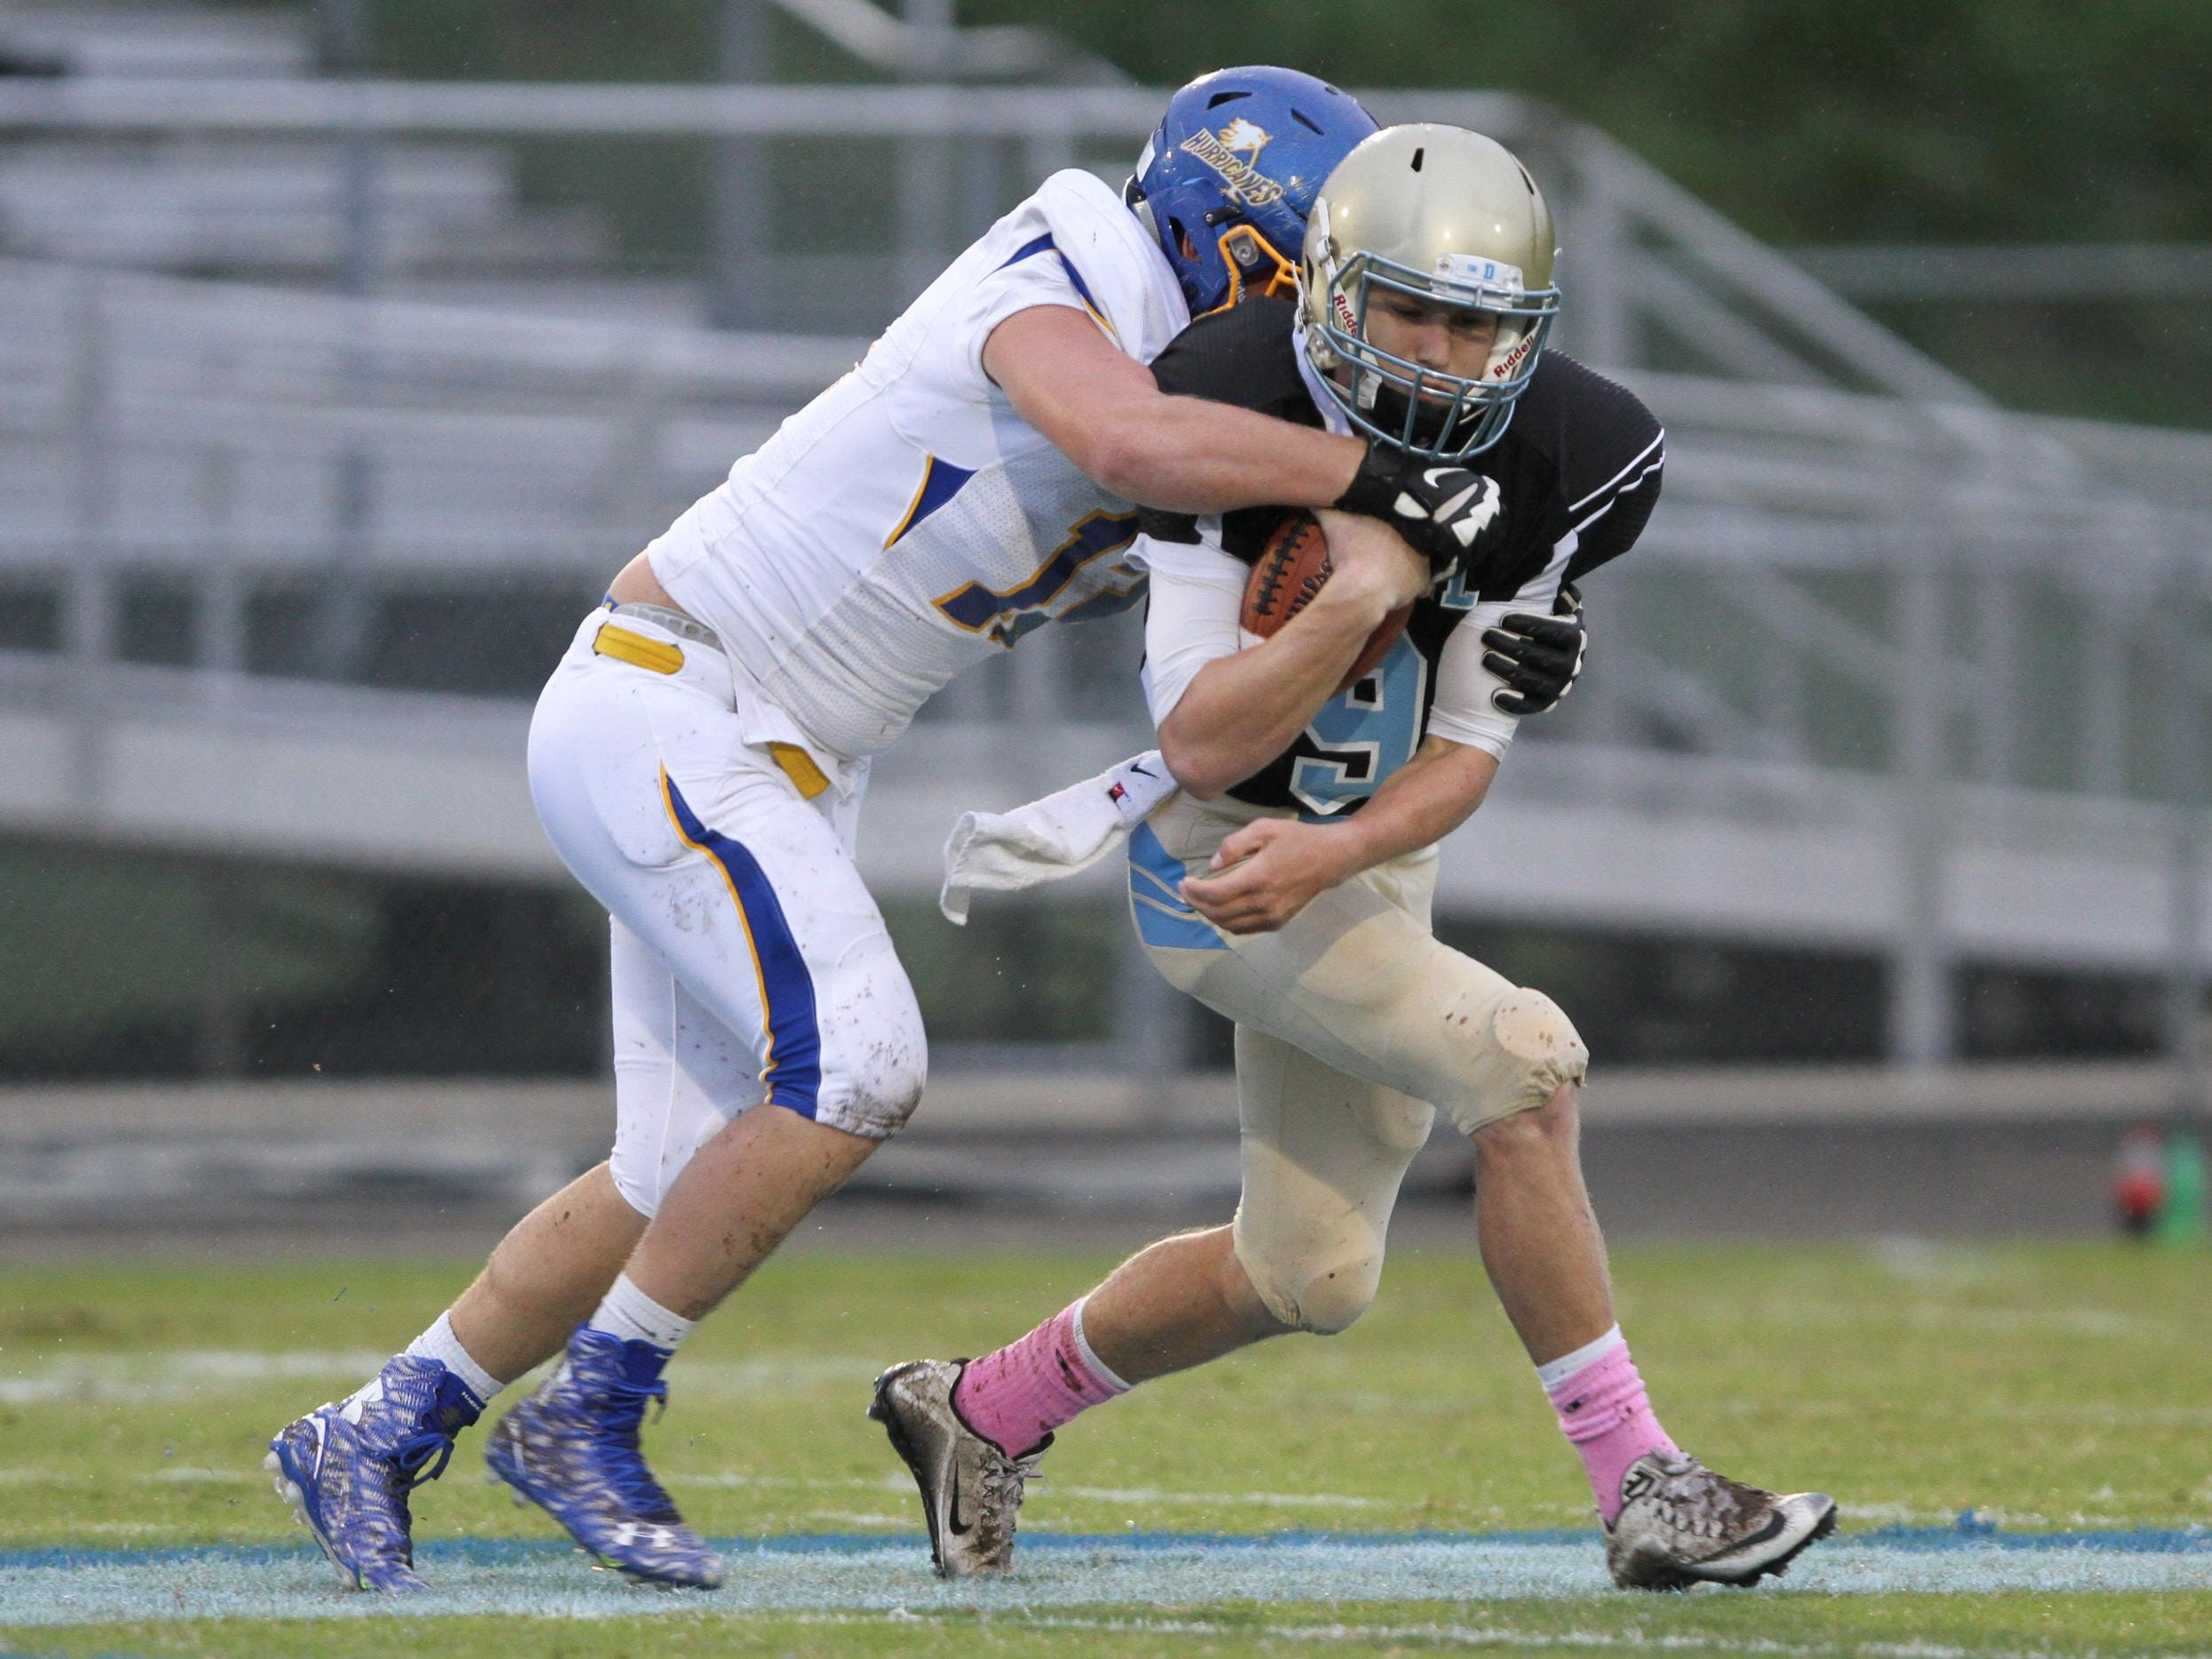 Chase McCroskey of Wren (12) tackles Ben Batson (9) of Daniel for a loss friday night at Daniel High School, October 2, 2015.